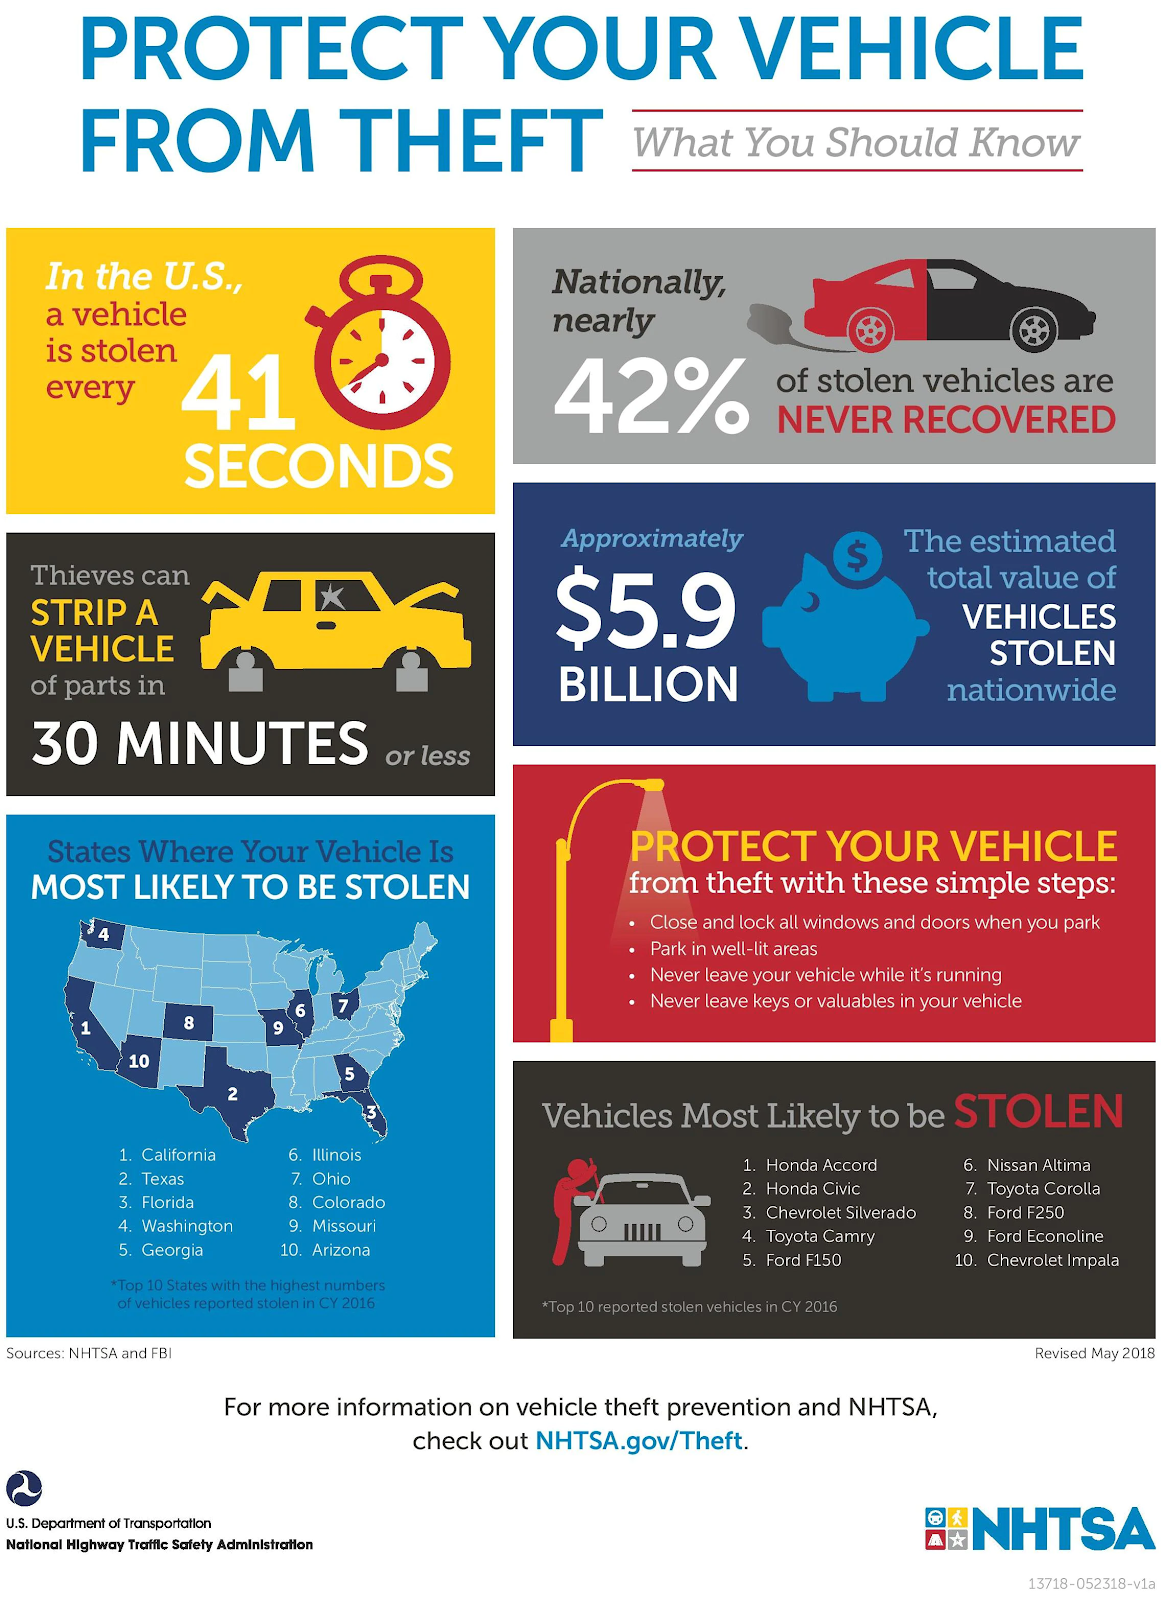 Protect your vehicle from theft.